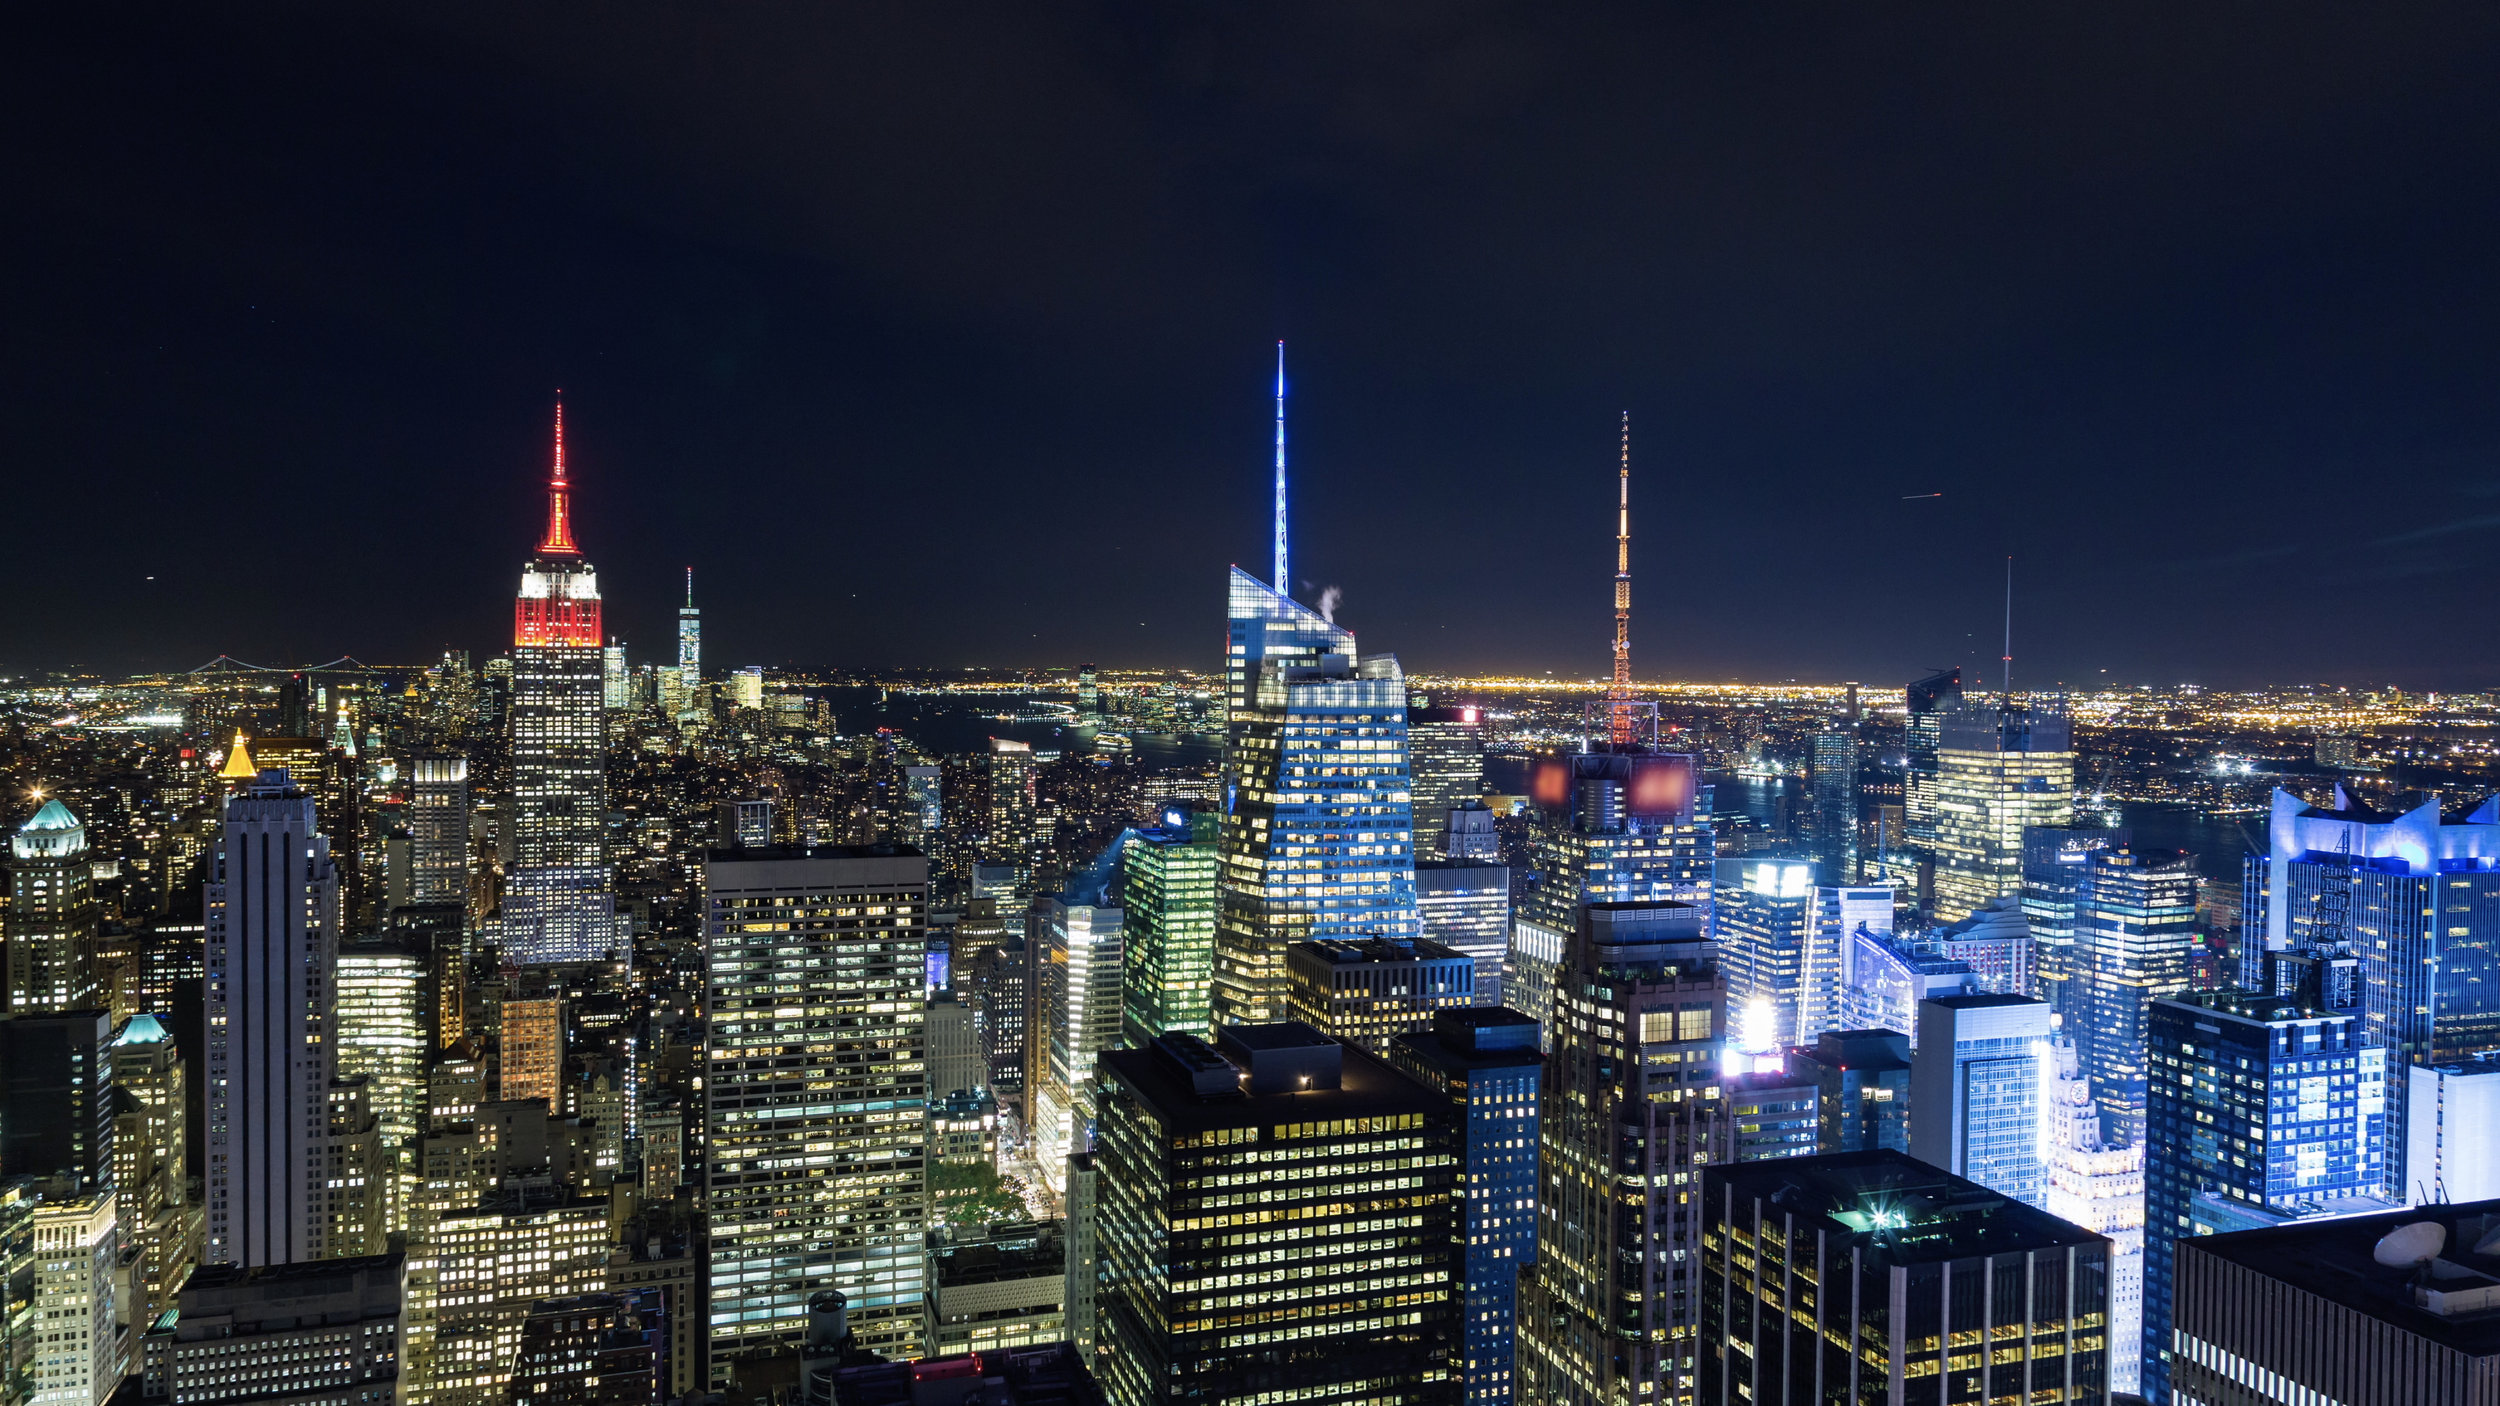 (HD) Empire State Building And Times Square Manhattan, New York City At  Night - Emeric's Timelapse